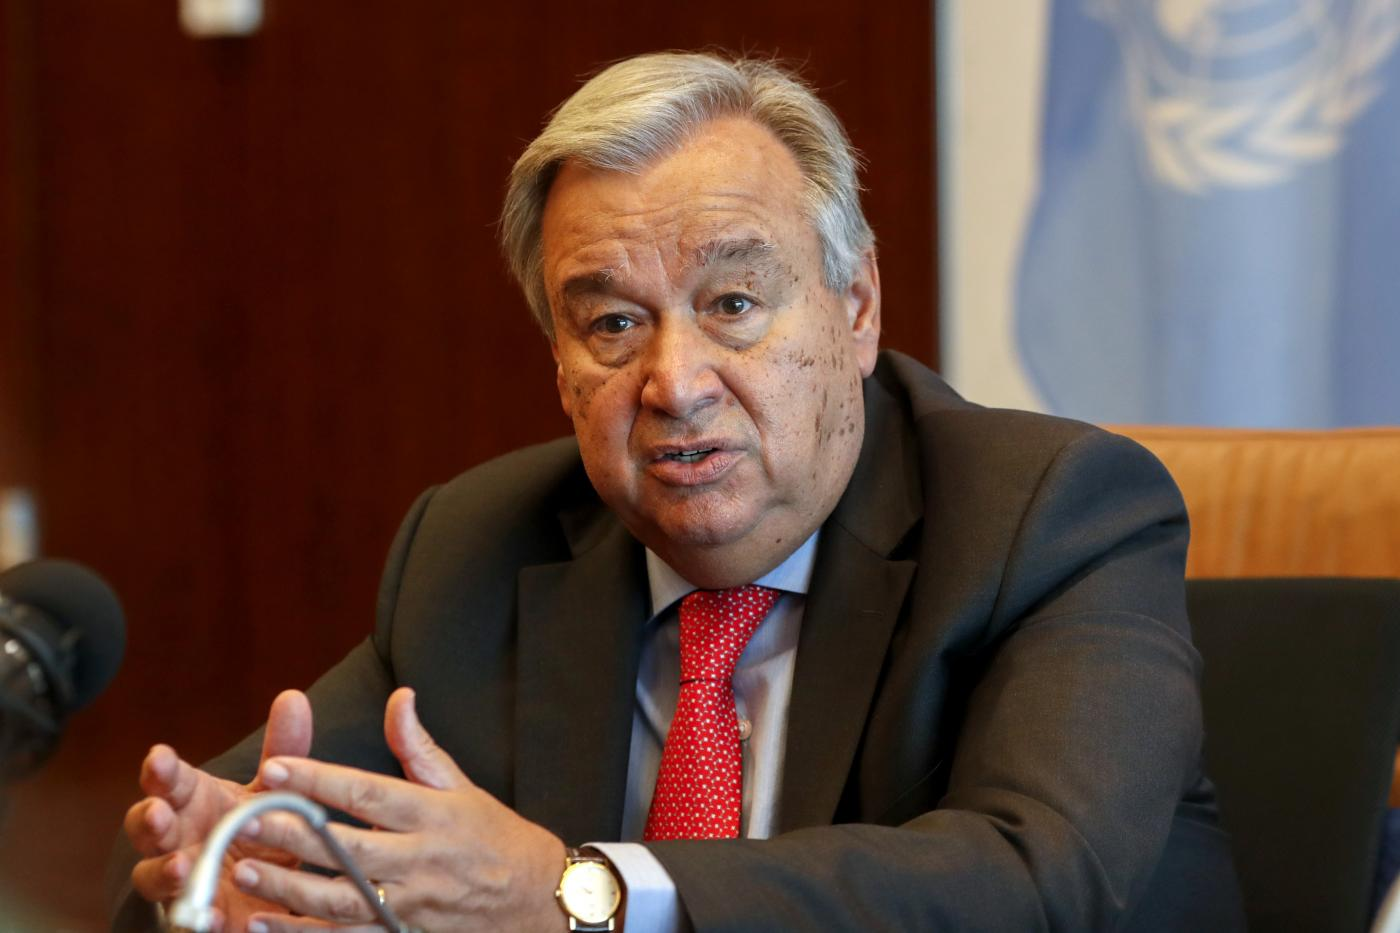 UN-SECRETARY GENERAL-CHINA-AFRICA COOPERATION-INTERVIEW by .